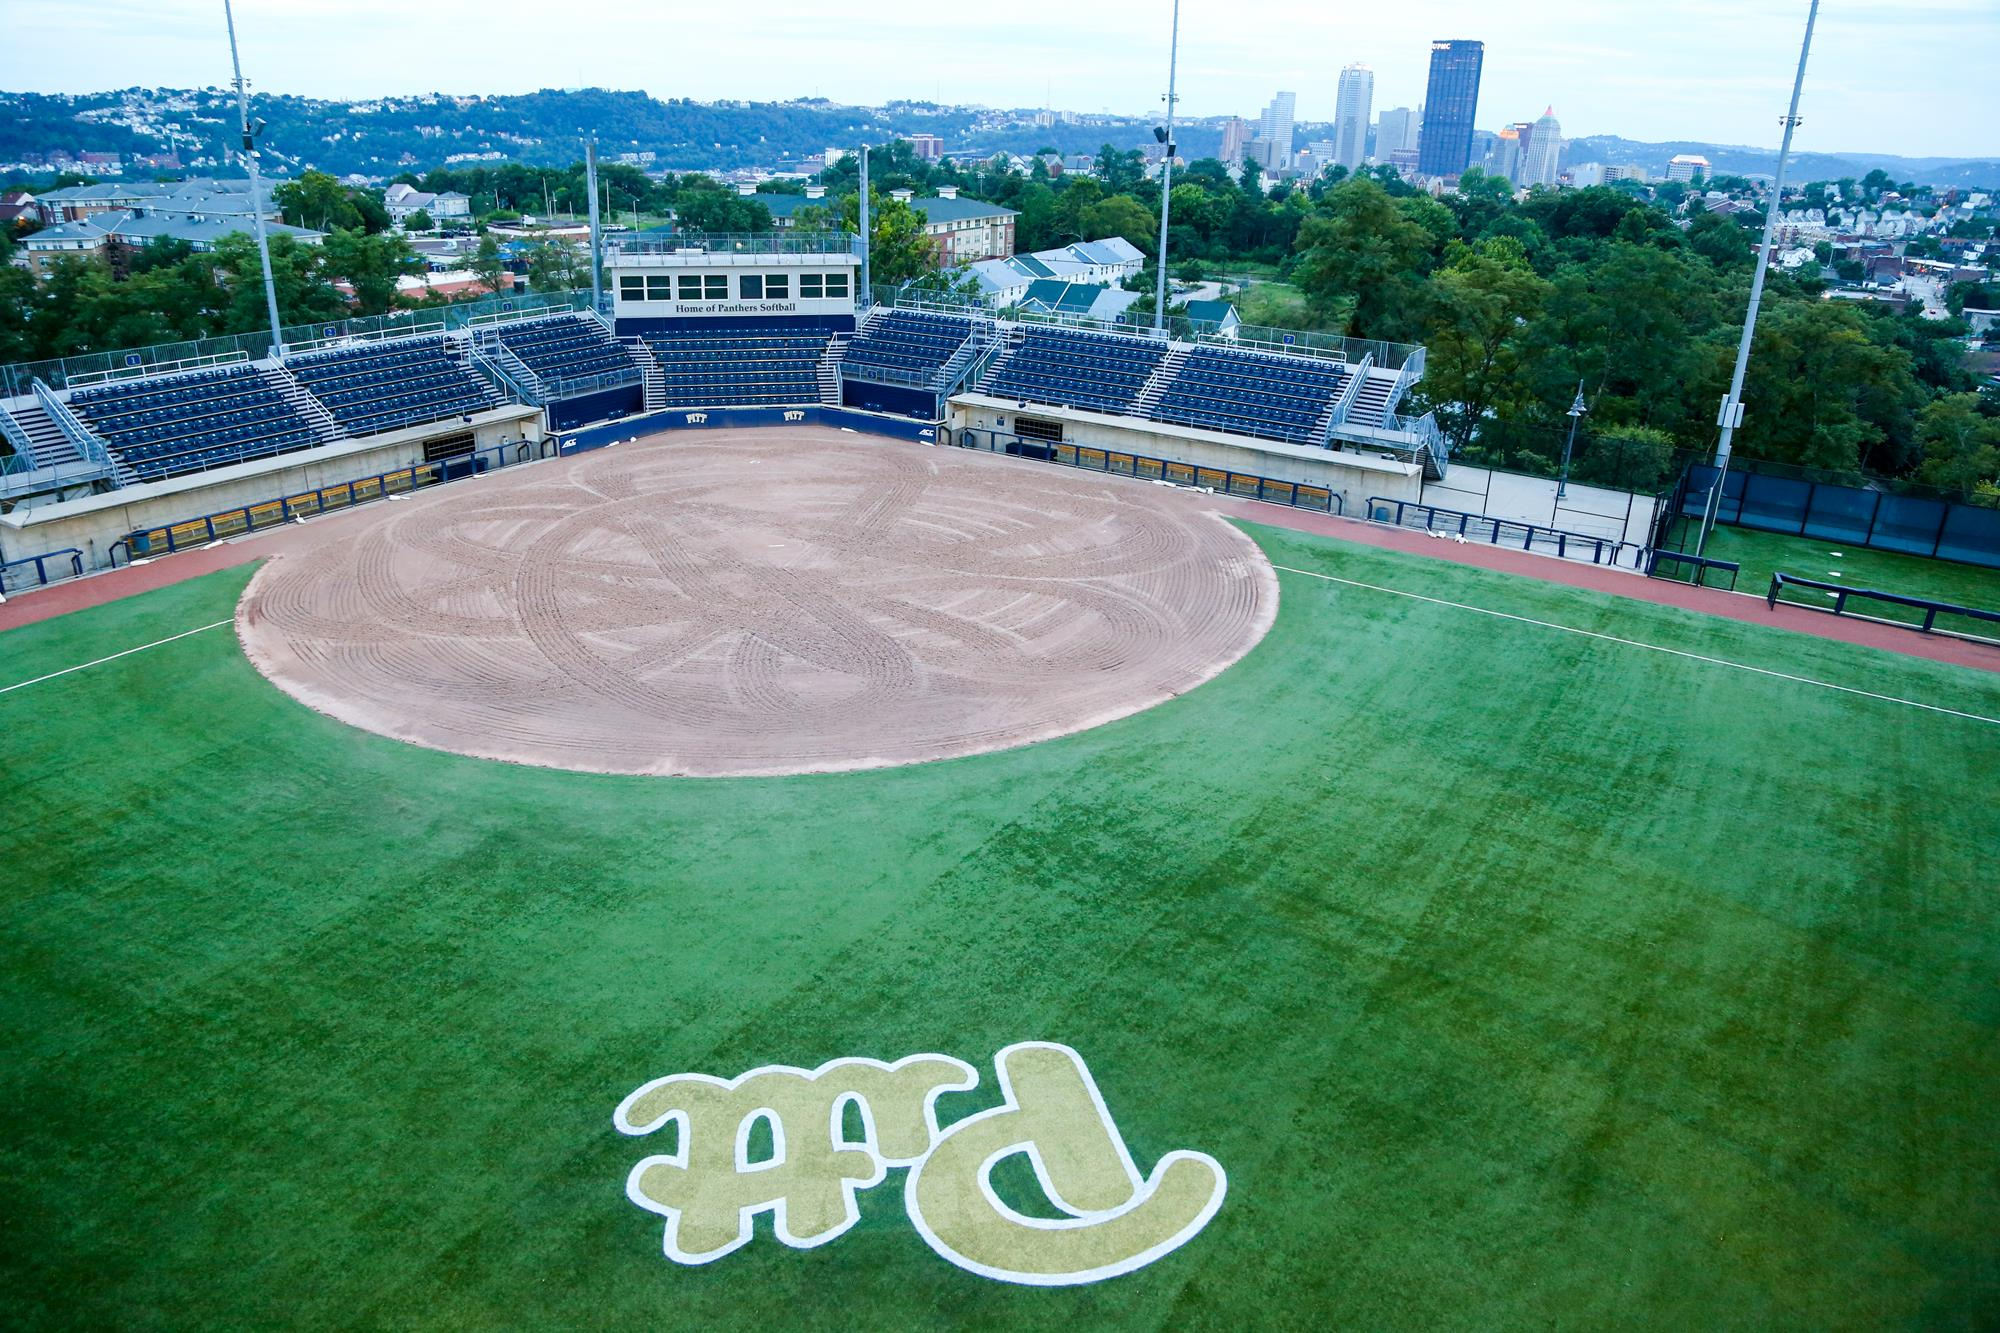 Petersen sports complex facilities university of pittsburgh view full image malvernweather Image collections